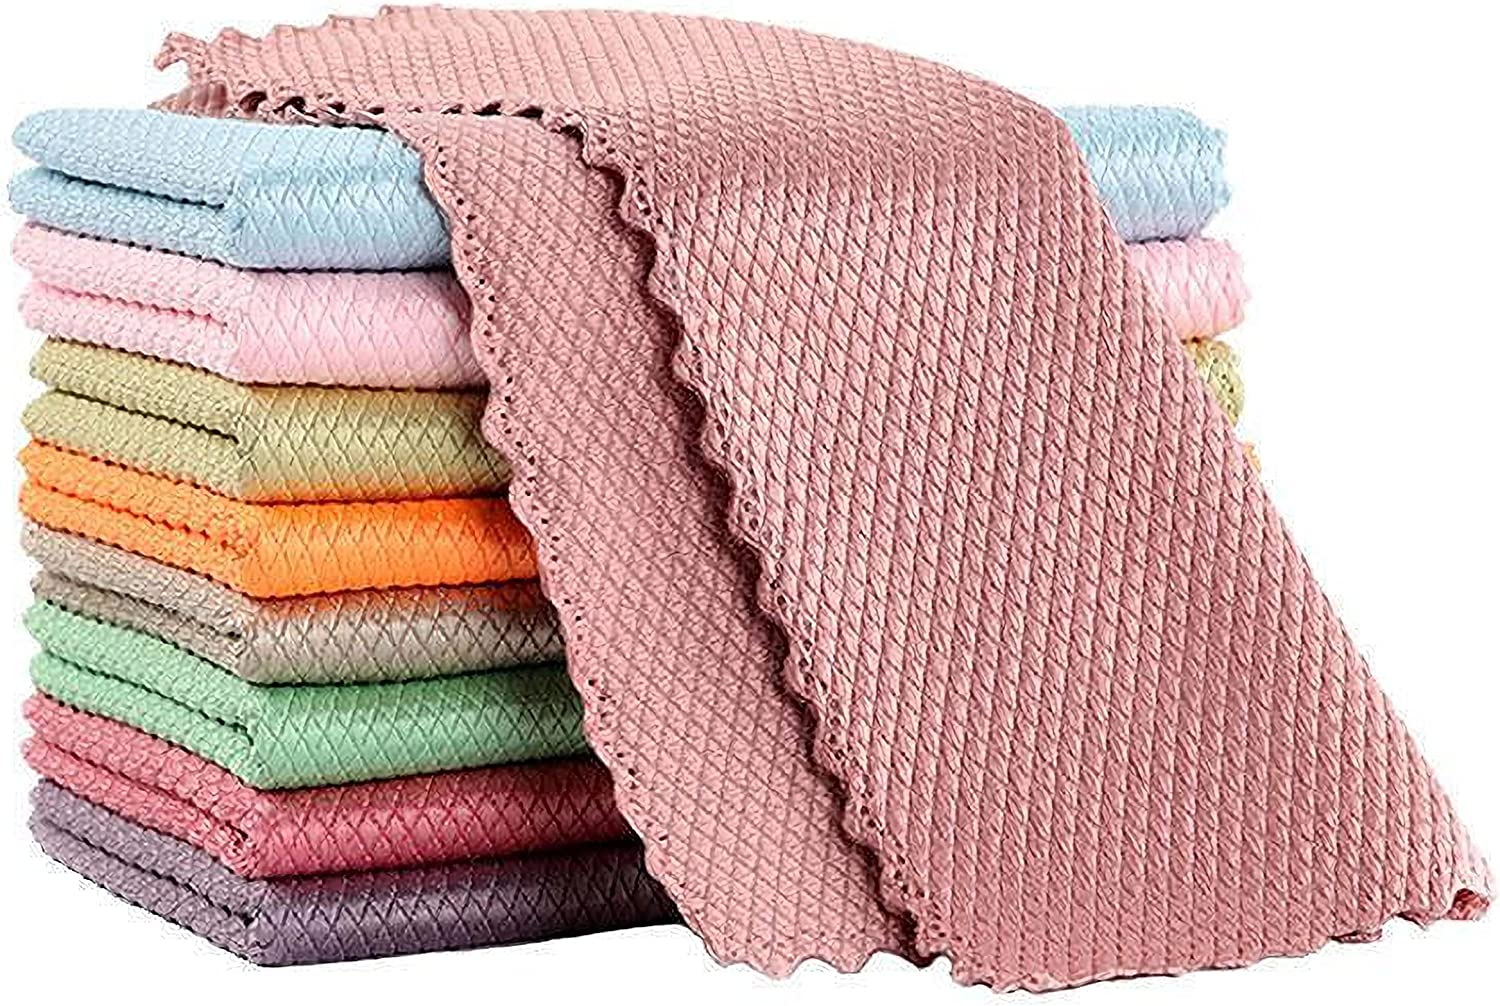 10 Pack Kitchen Towels, 9.89.8 Inches Dish Towels, Kitchen Decor Dishcloths for Washing Dishes, Reusable Cleaning Cloths - Super Absorbent, House Warming Presents for New Home (9.89.8 inches)